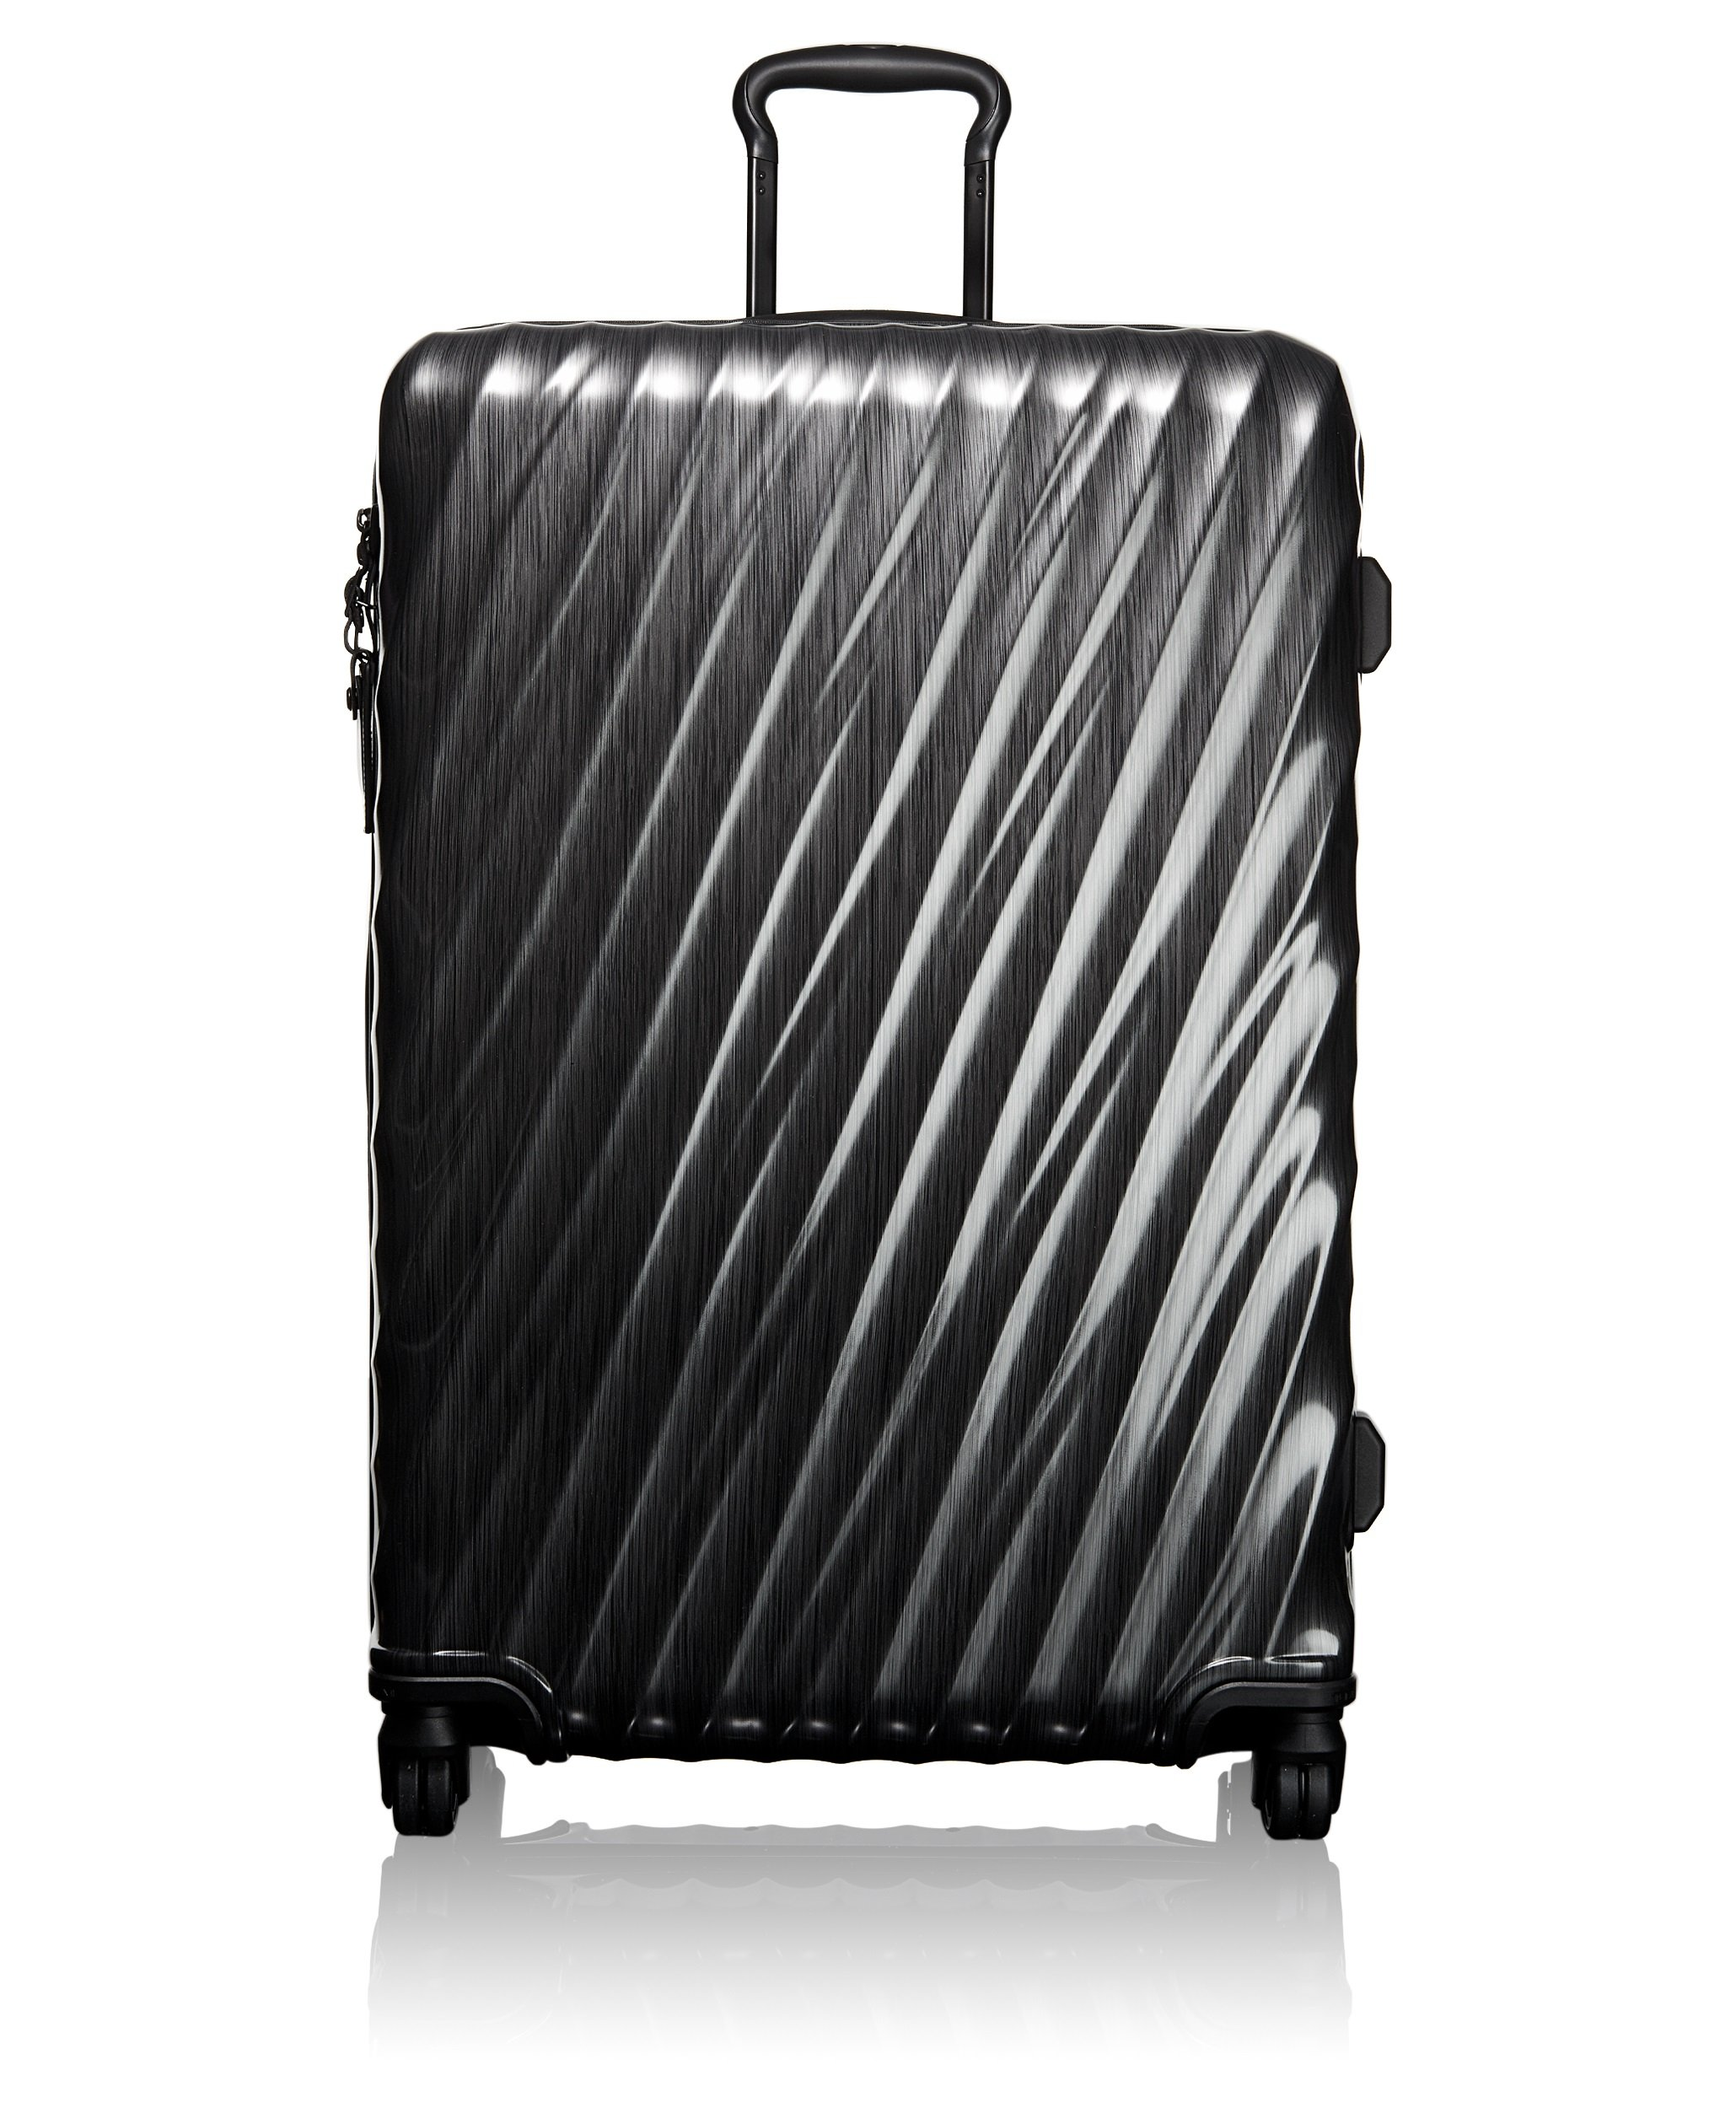 Tumi 19 Degree Extended Trip Packing Case, Black by Tumi